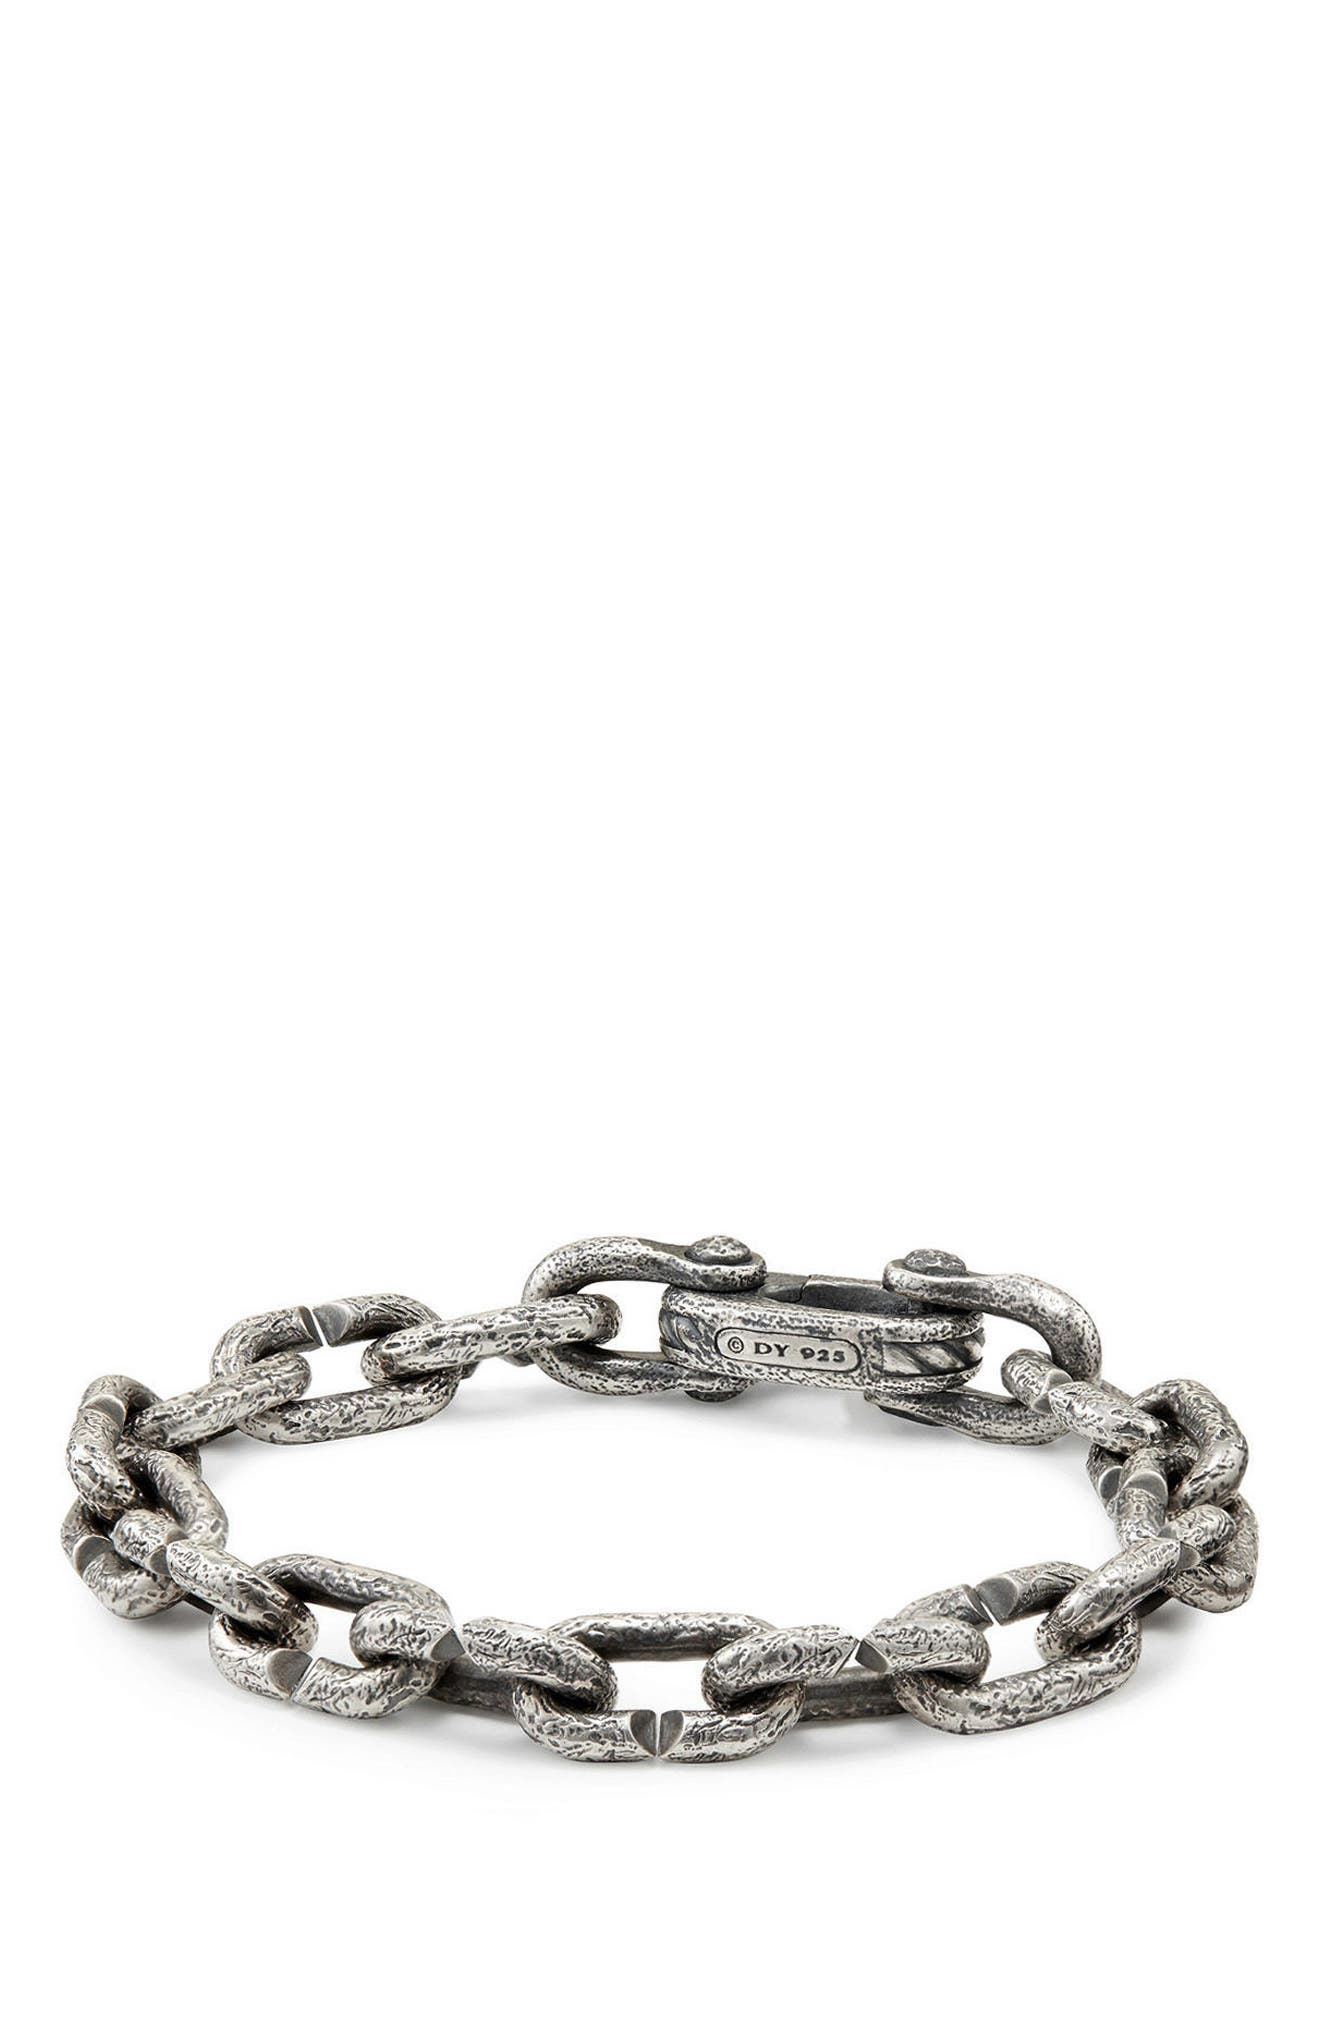 Alternate Image 1 Selected - David Yurman Shipwreck Chain Bracelet